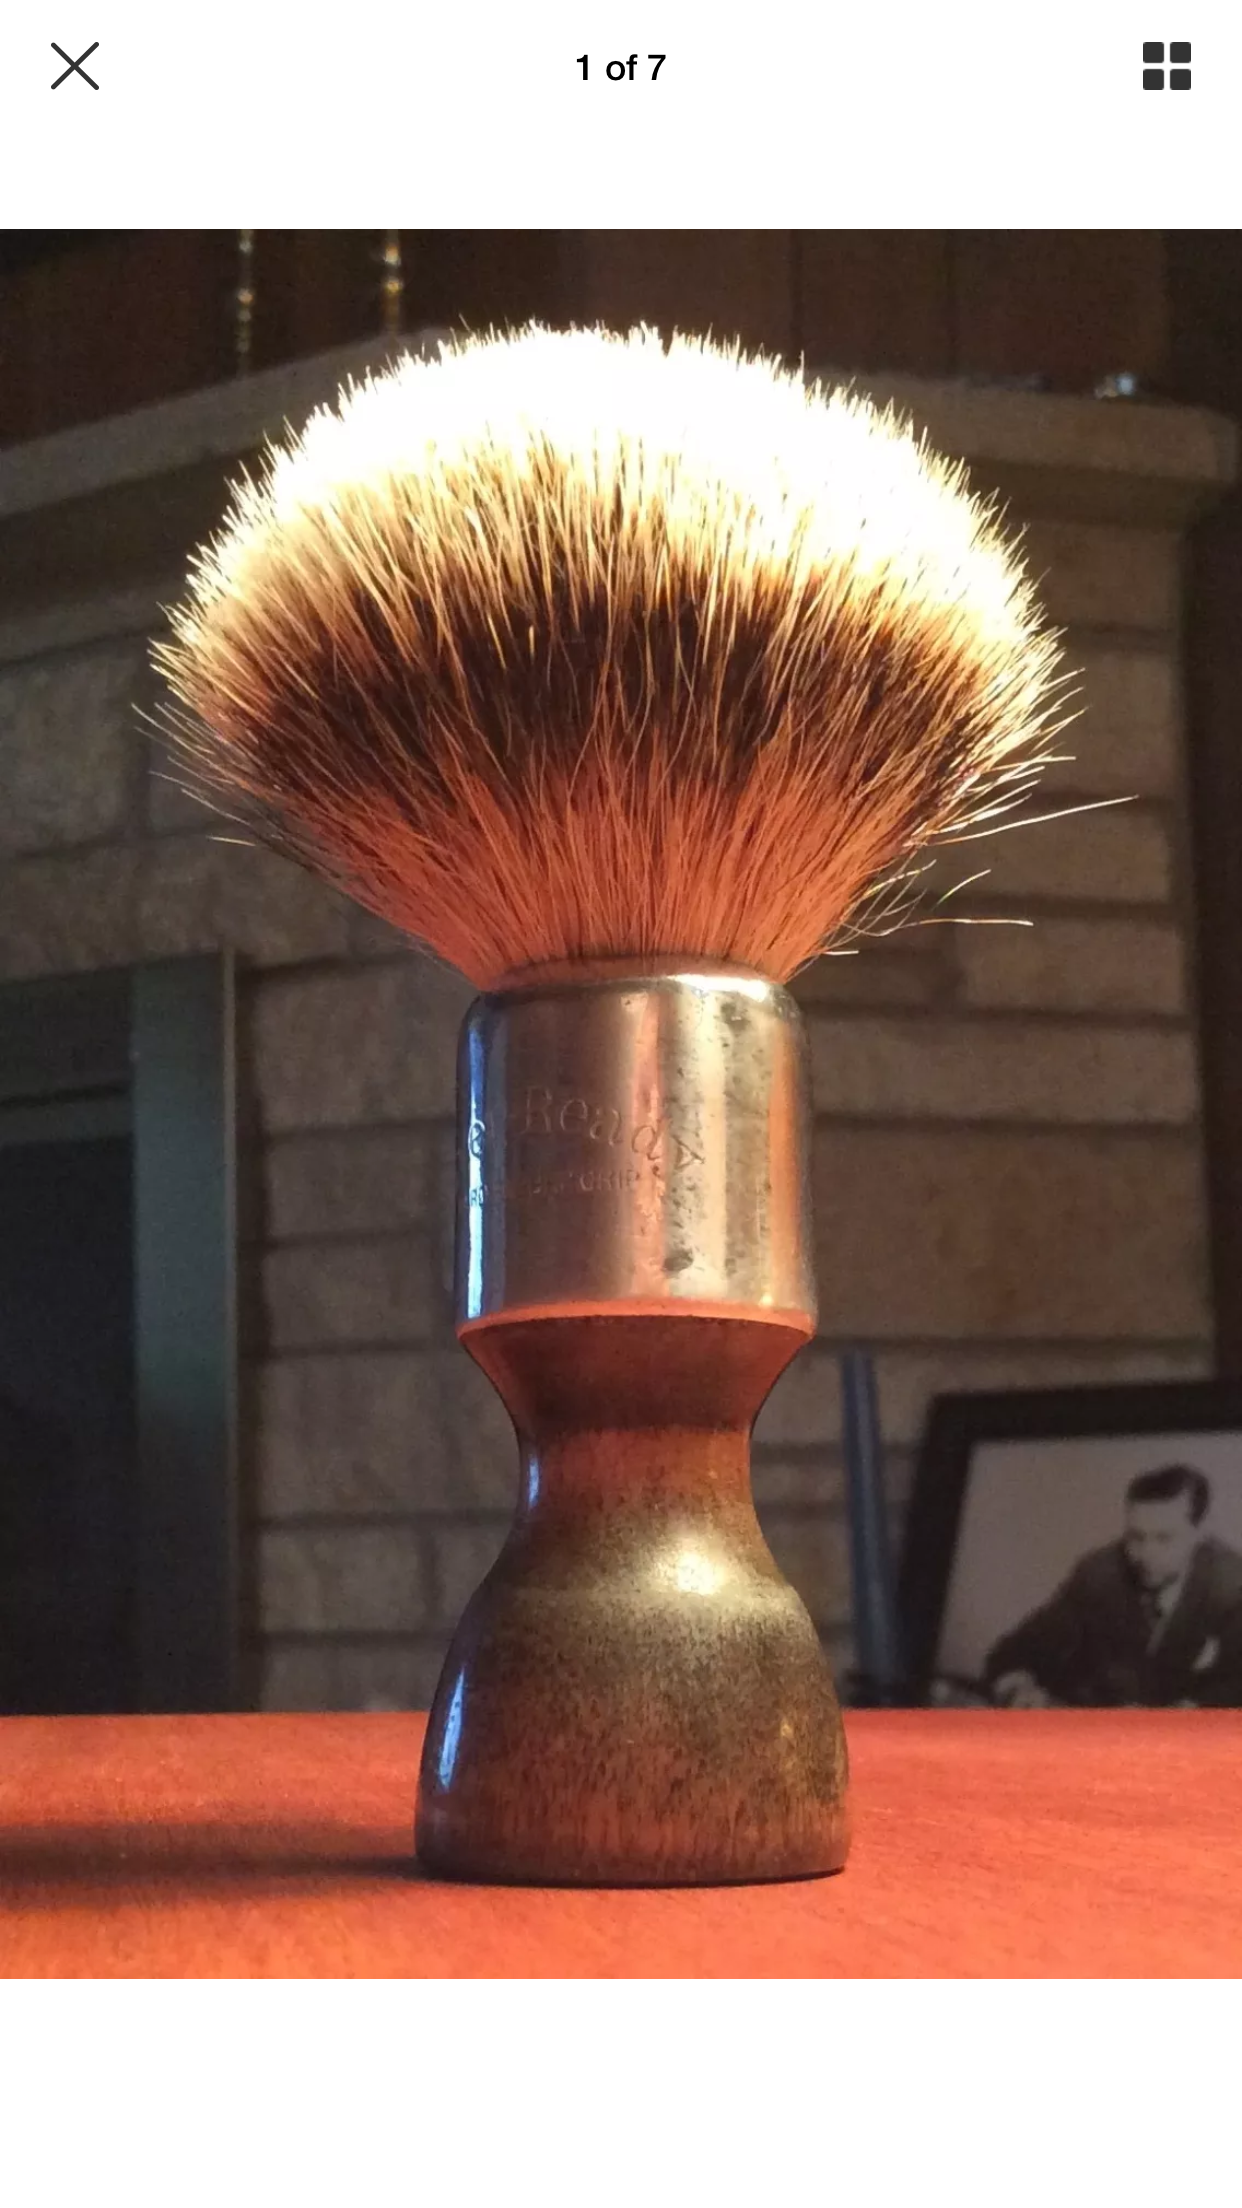 Pin by Jollity on Vintage Brushes & Mens Shaving (With